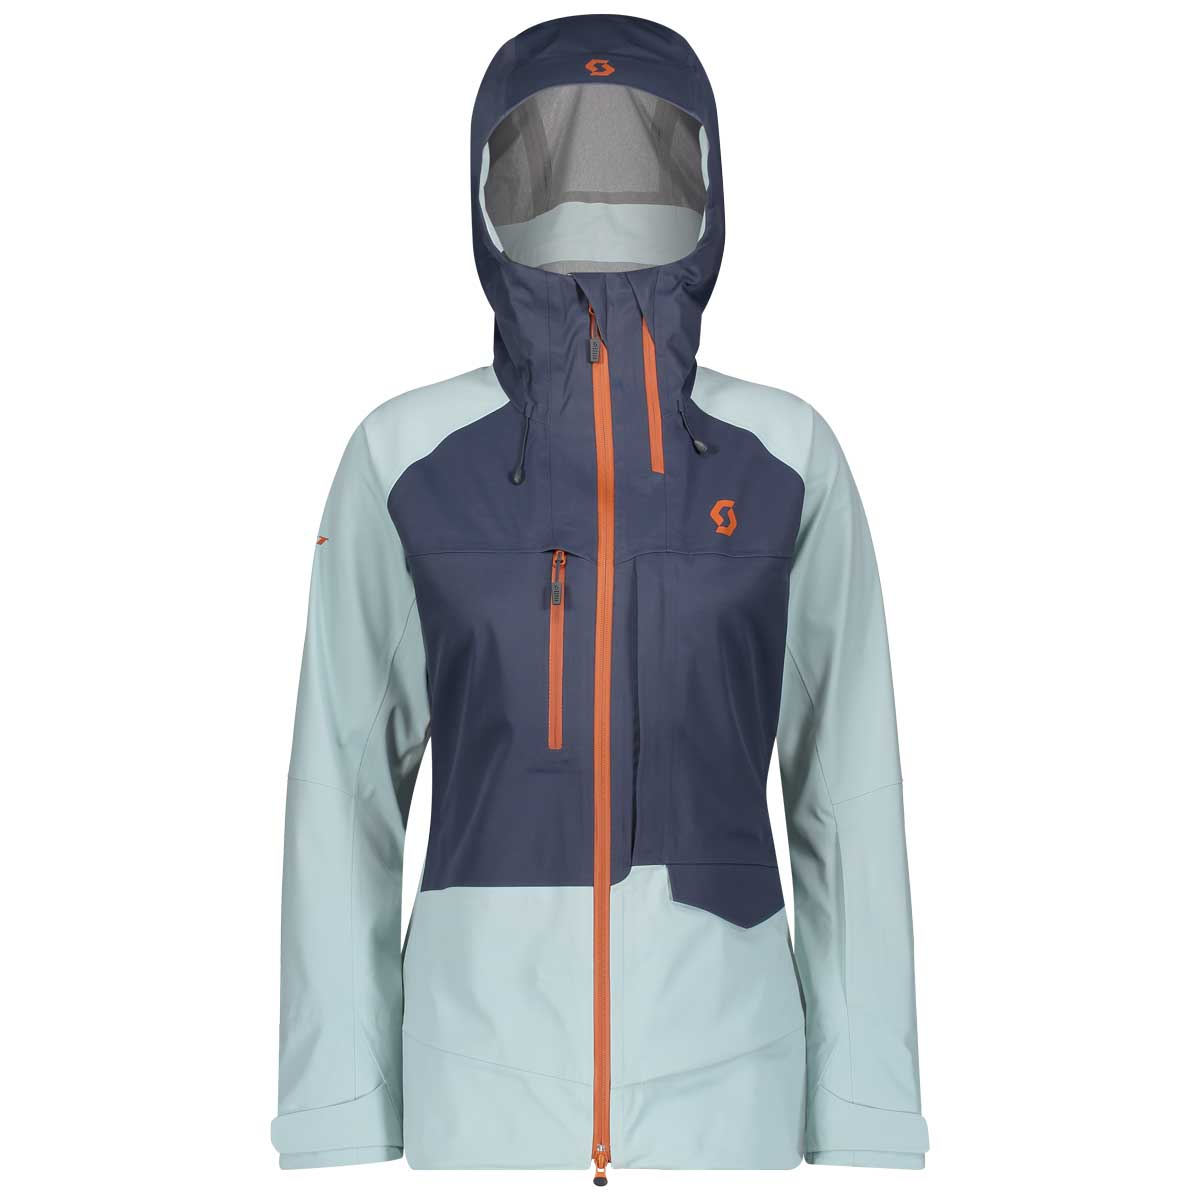 scott women's vertic 3 layer jacket in Blue Nights and Cloud Blue